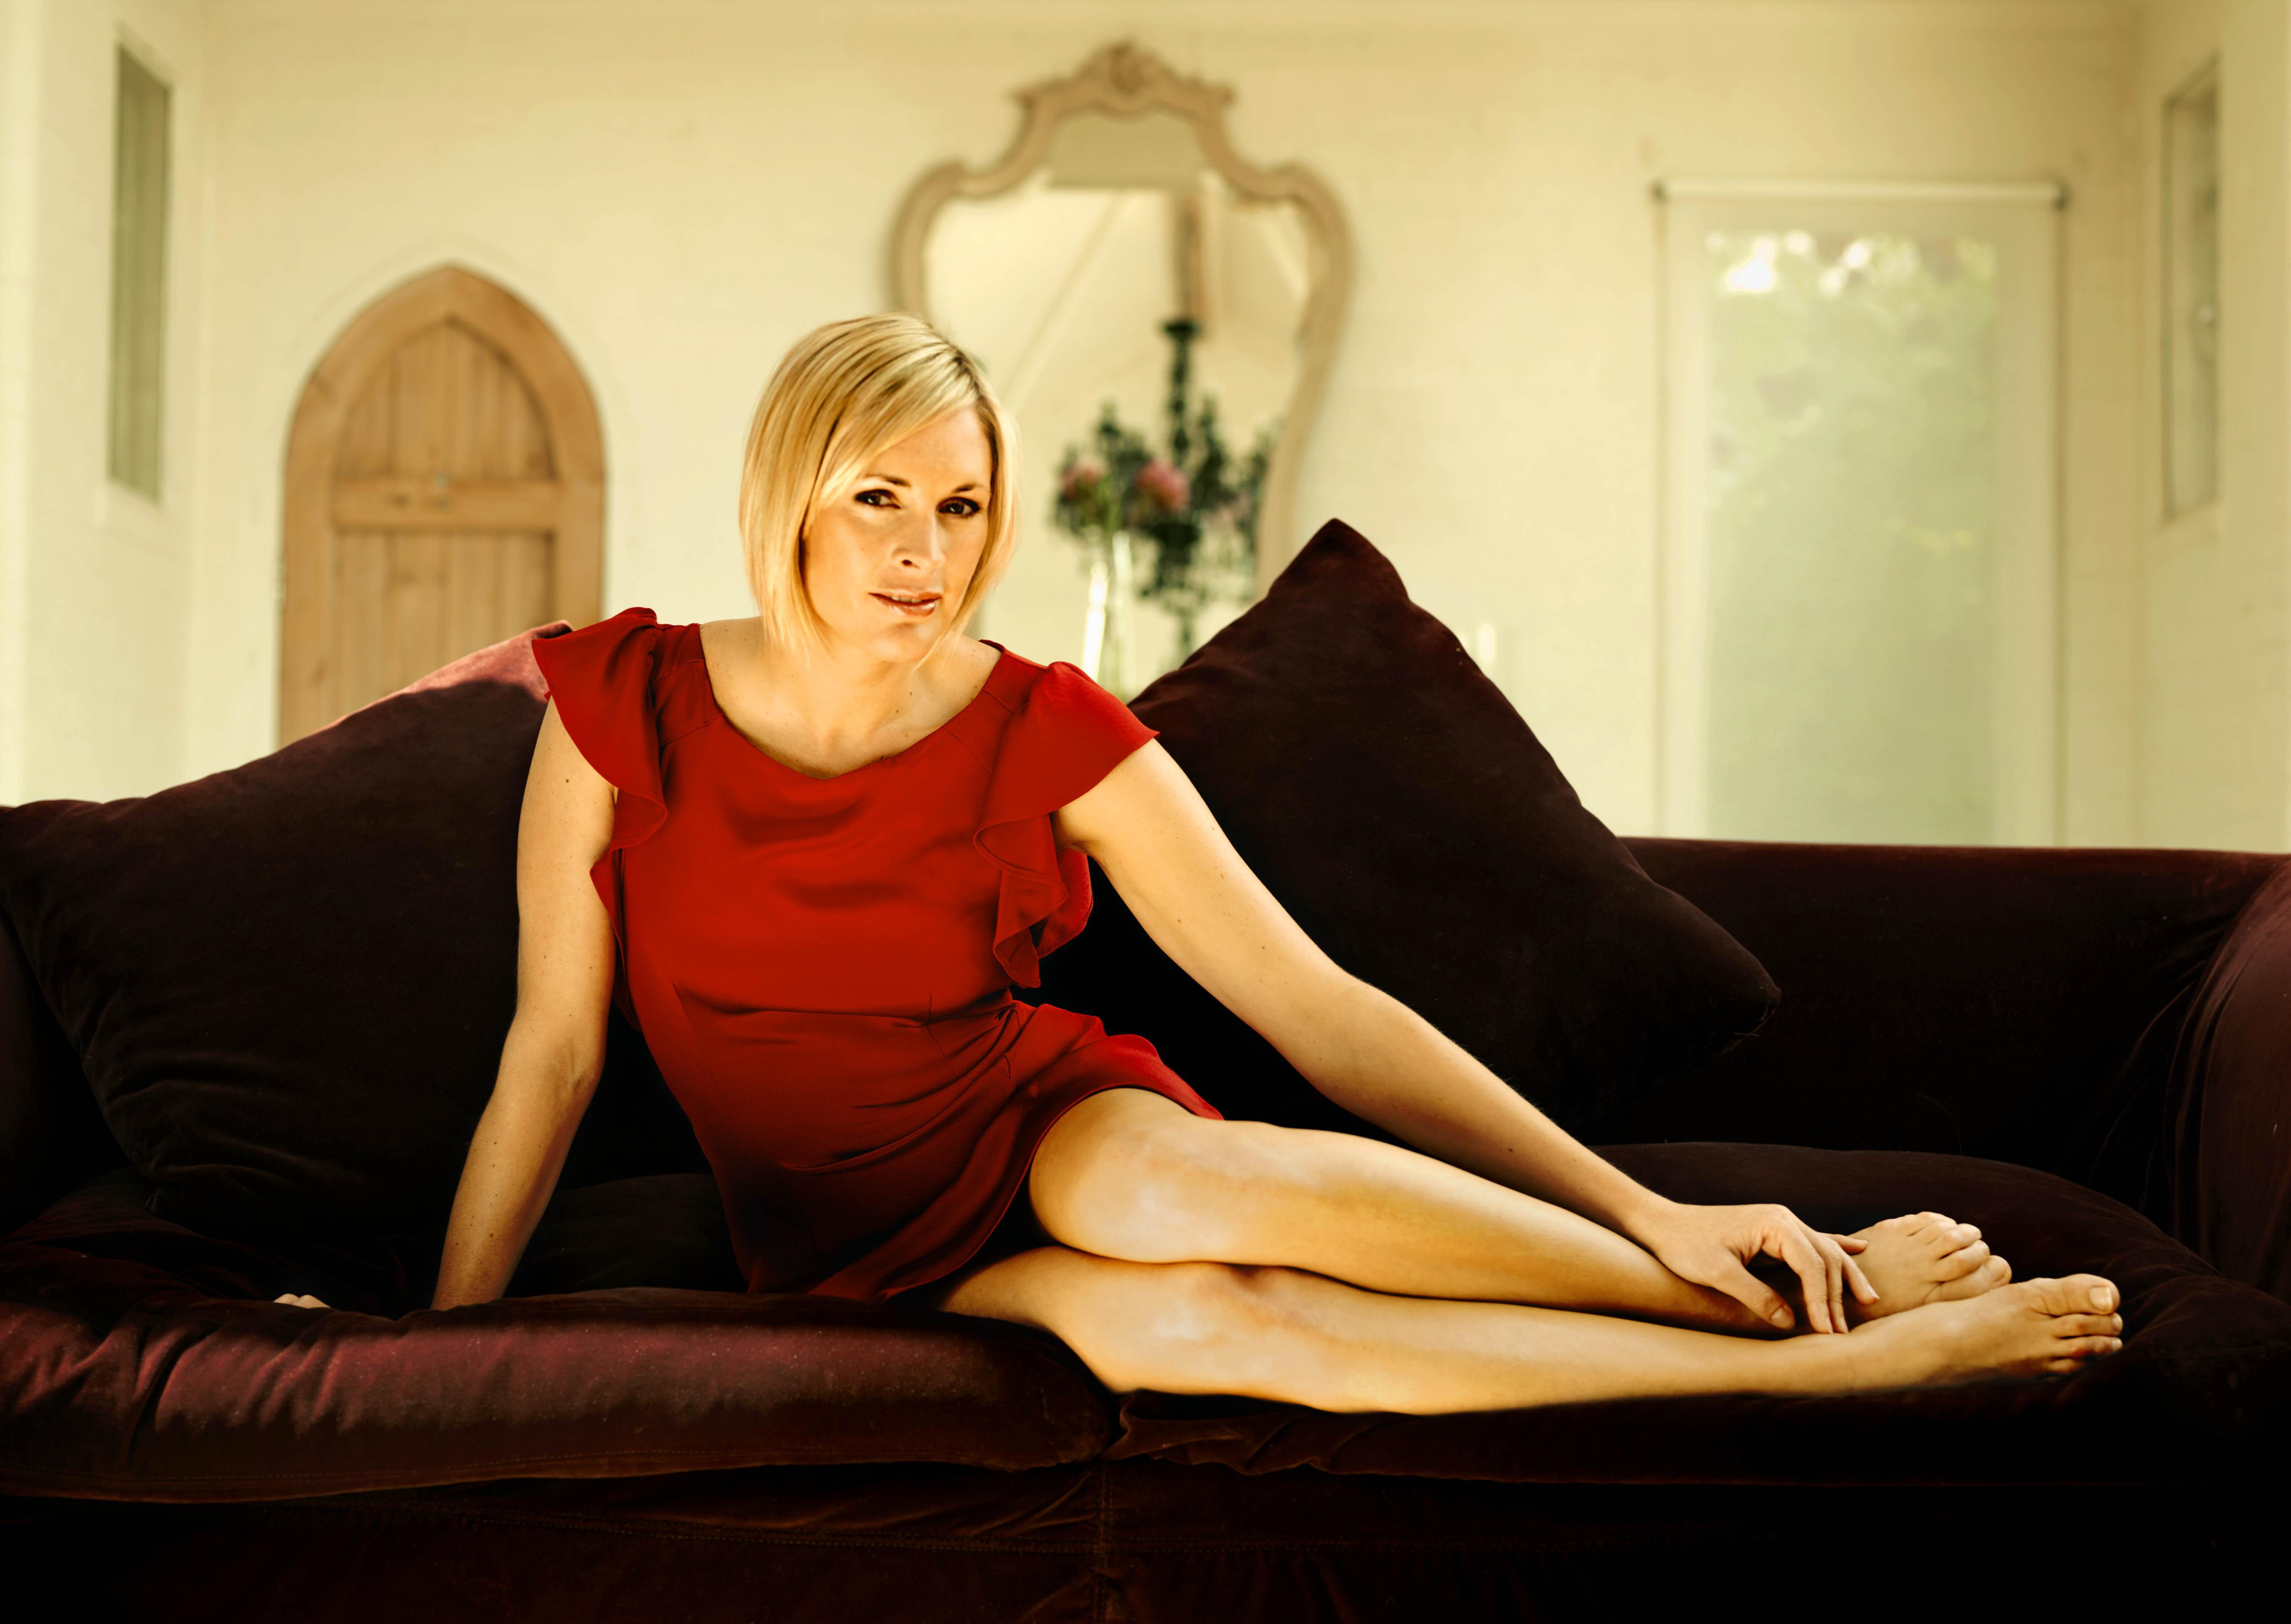 Jenni Falconer Wallpapers Images Photos Pictures Backgrounds